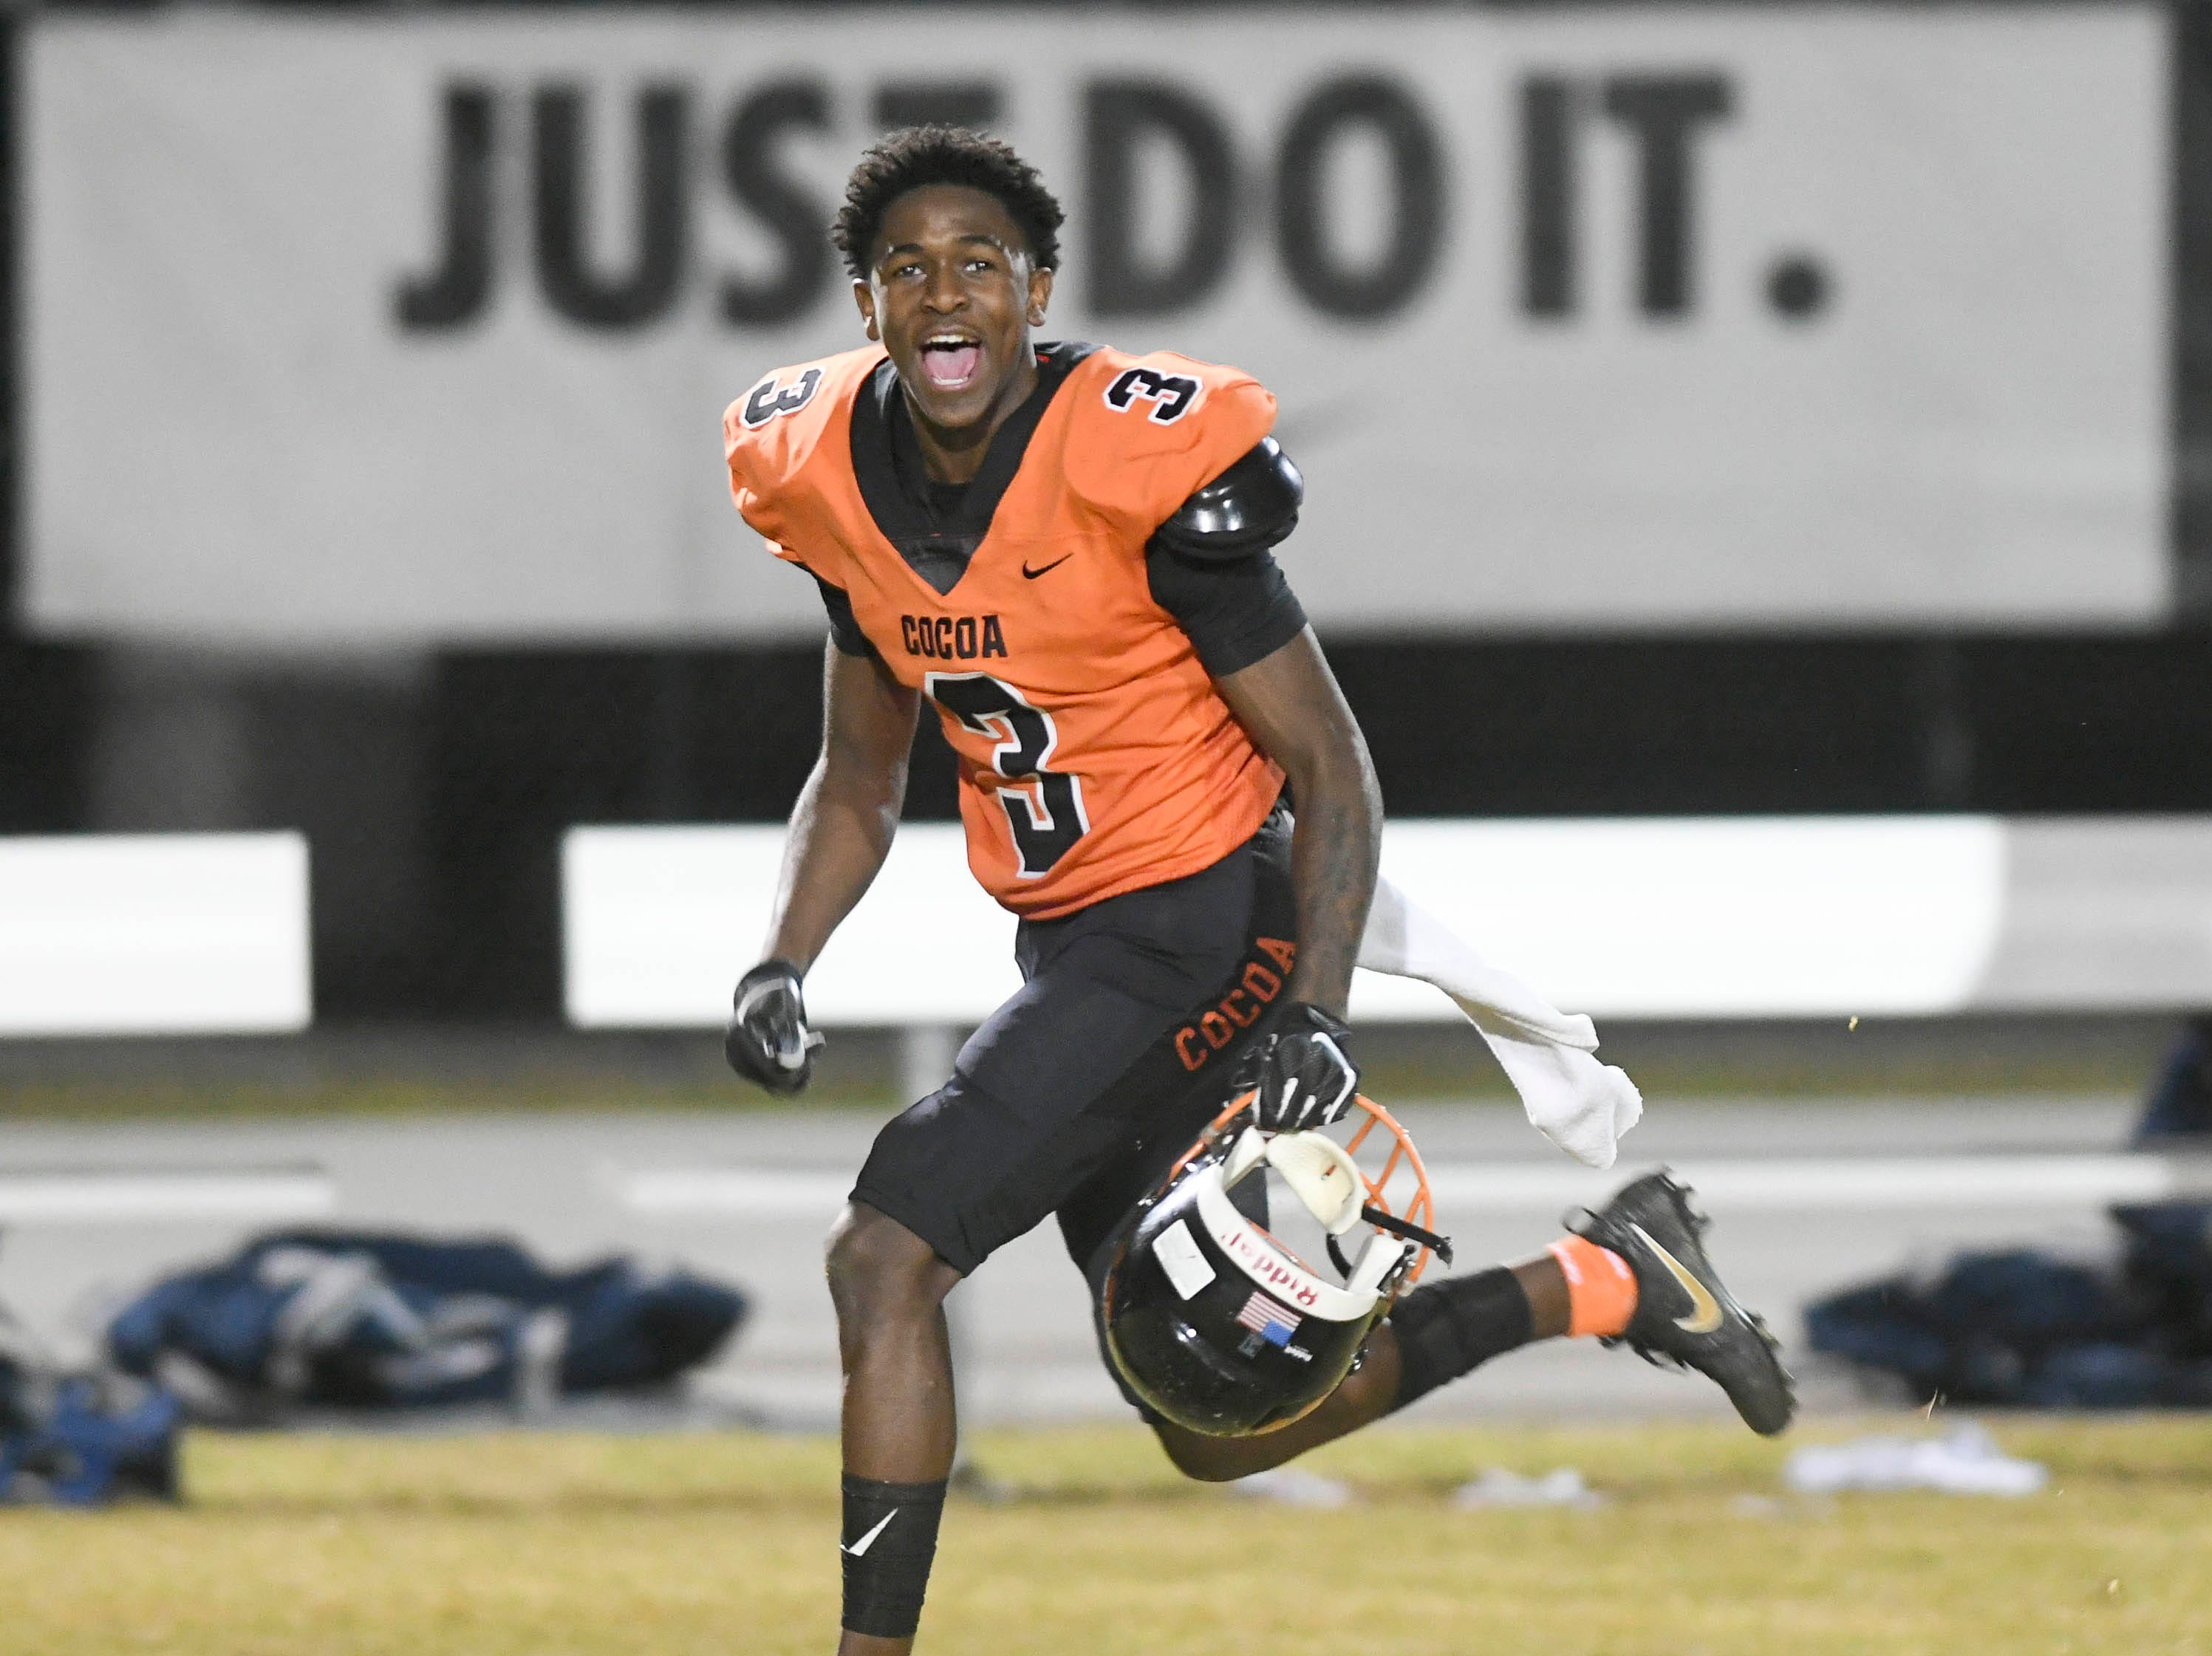 Latrell Pace of Cocoa celebrates after the Tigers defeat University 32-31 in Friday's Class 4A state semifinal.